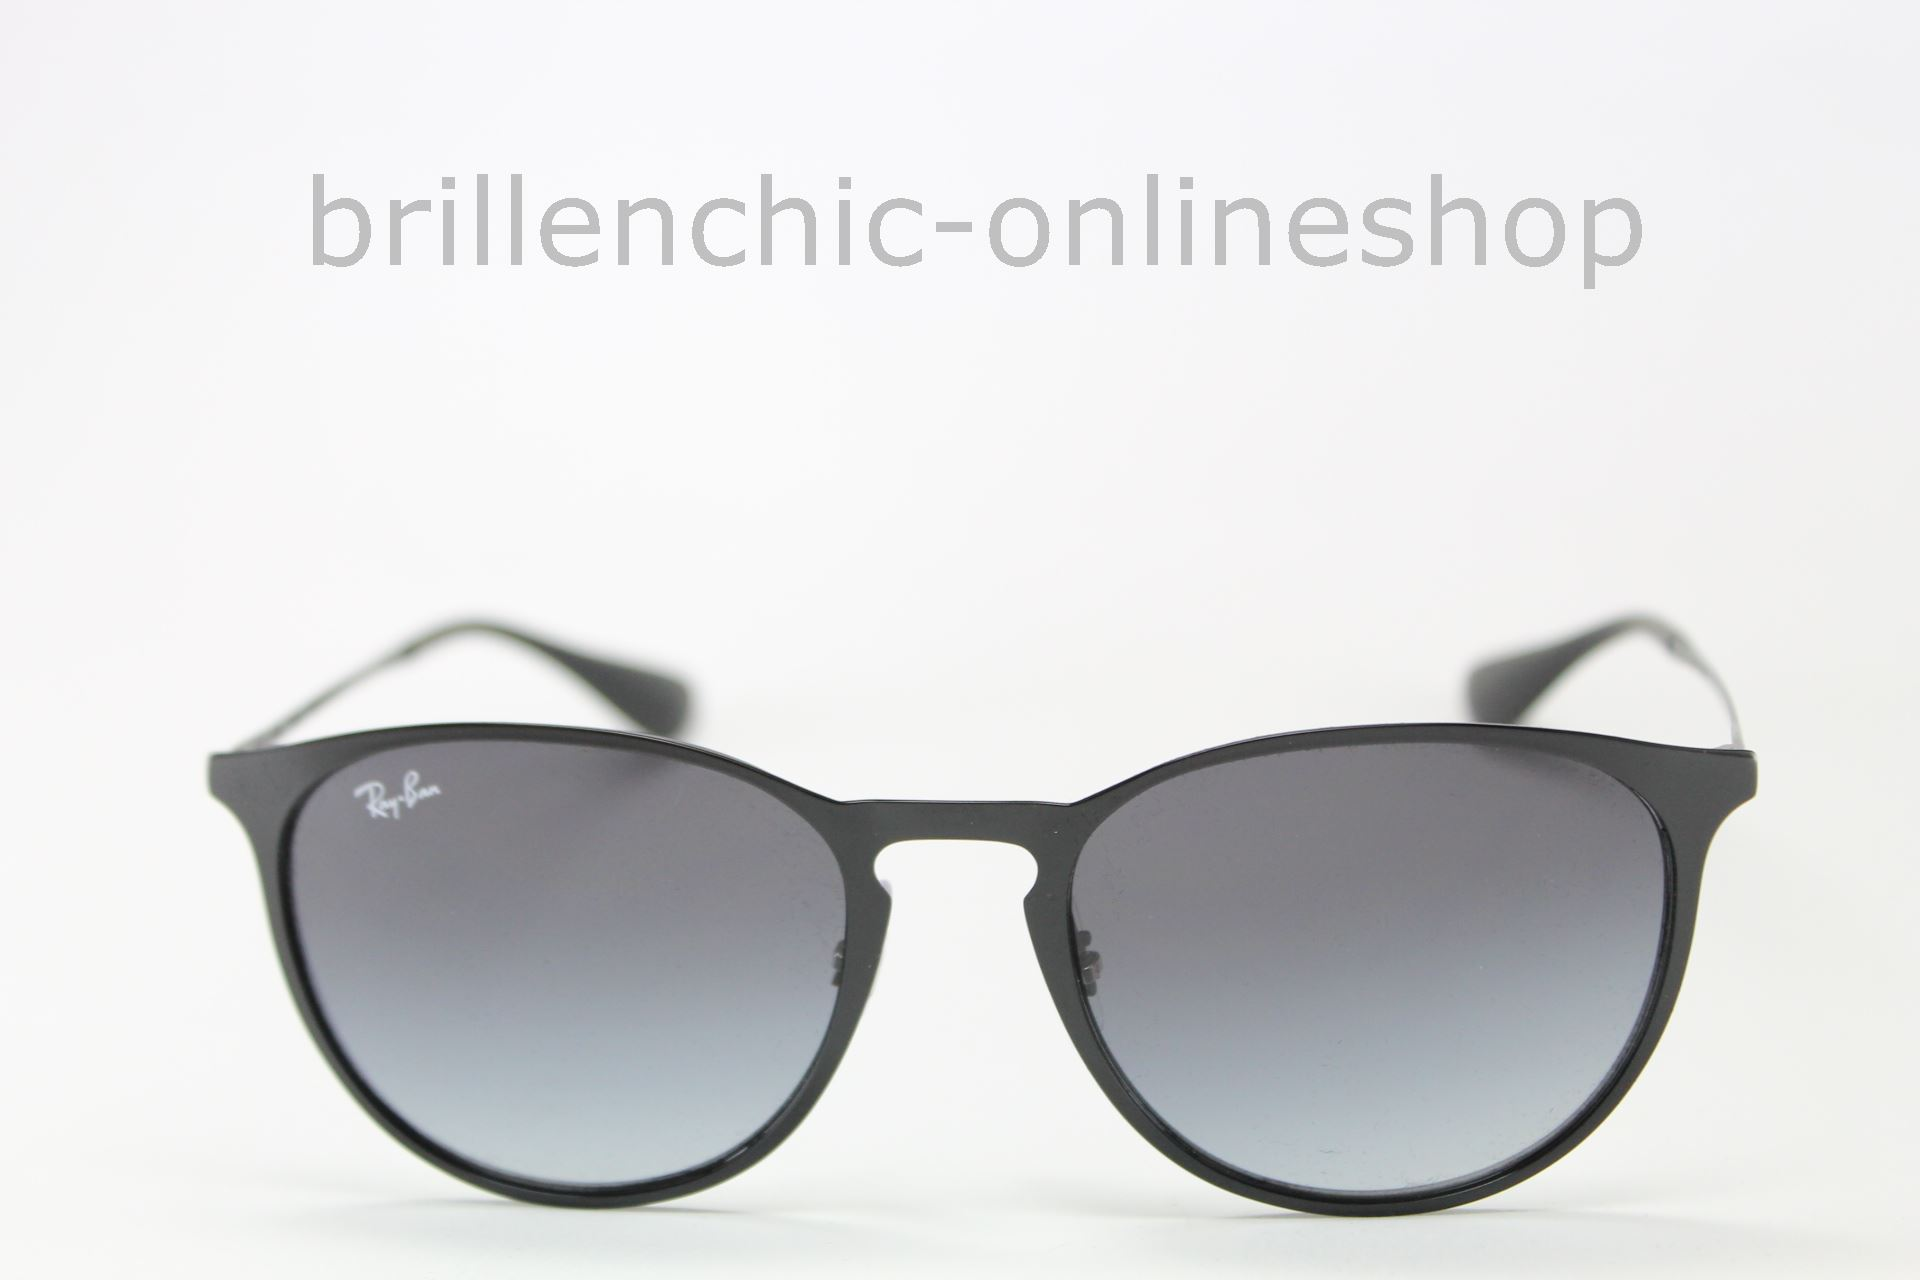 464d1daf41 Brillenchic-onlineshop in Berlin - Ray Ban ERIKA METAL RB 3539 002 ...